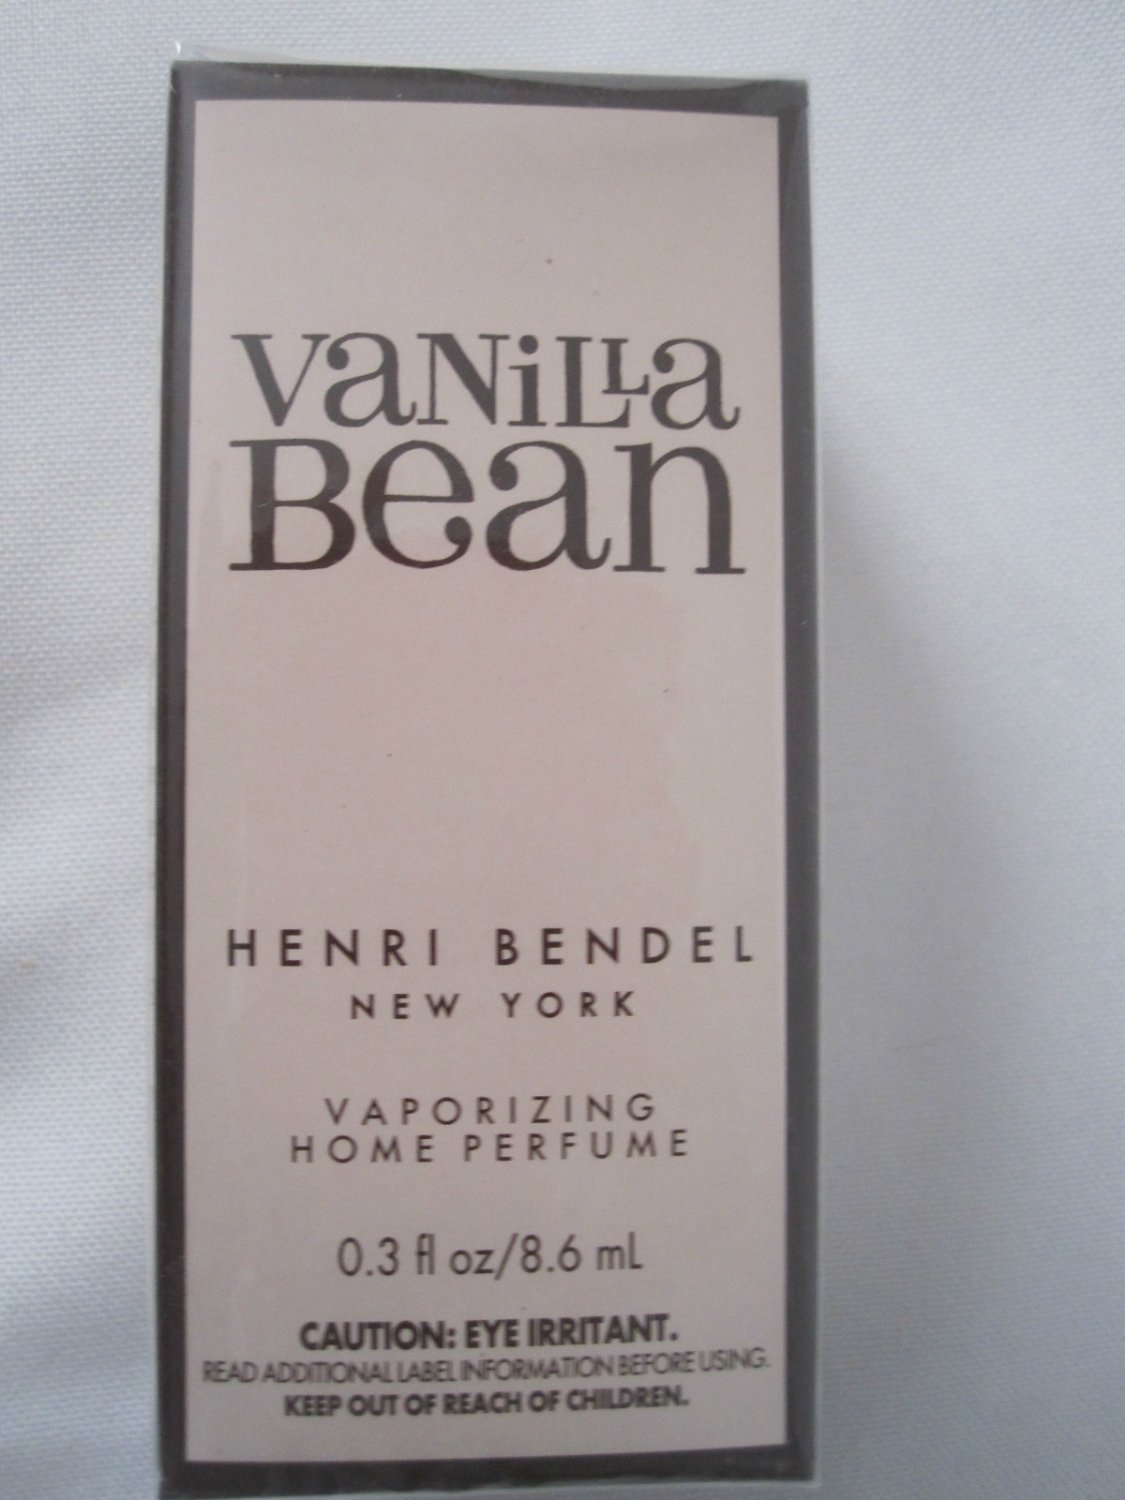 Henri Bendel Vanilla Bean X2 Home Perfume Vaporizing Oil FS  Bath Body Works simmer diffuser